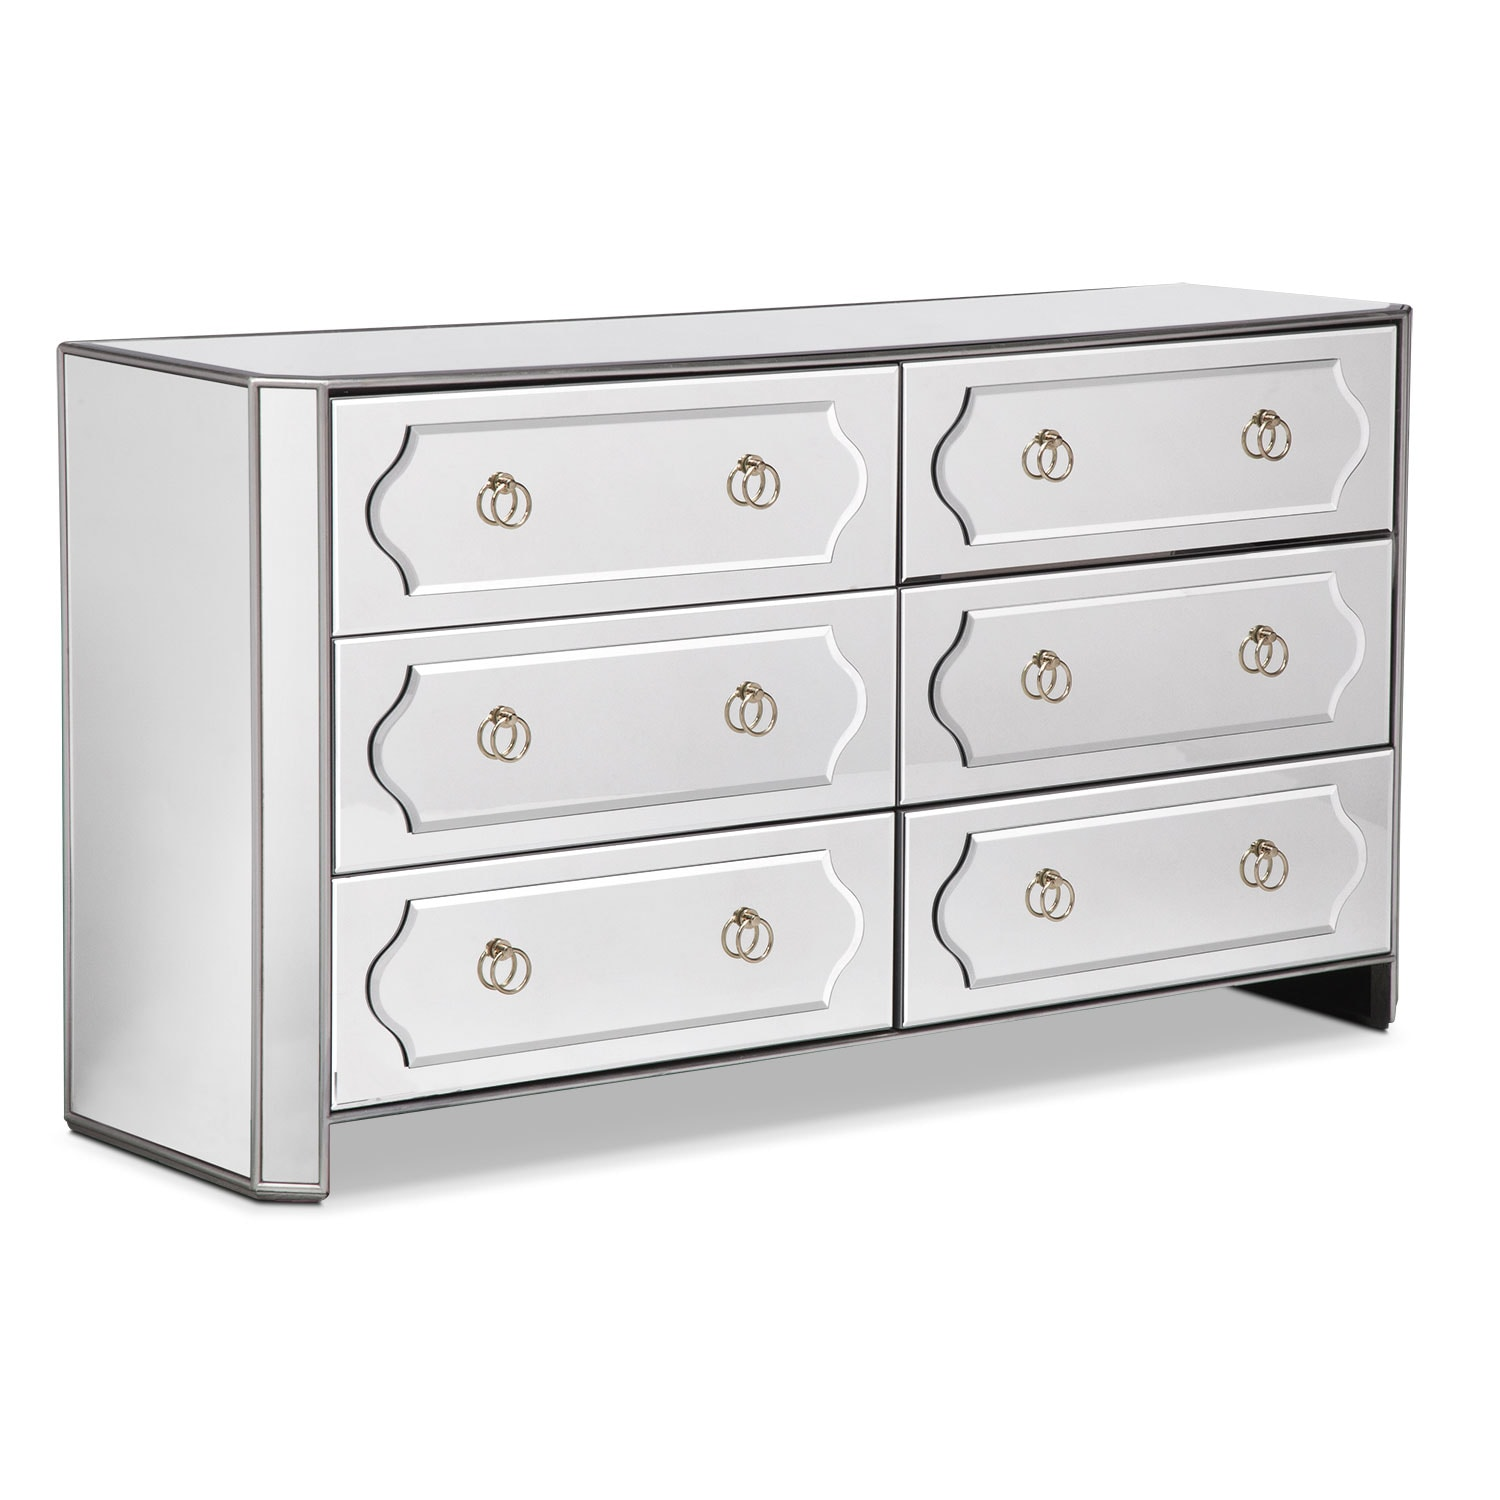 Harlow Dresser - Mirrored